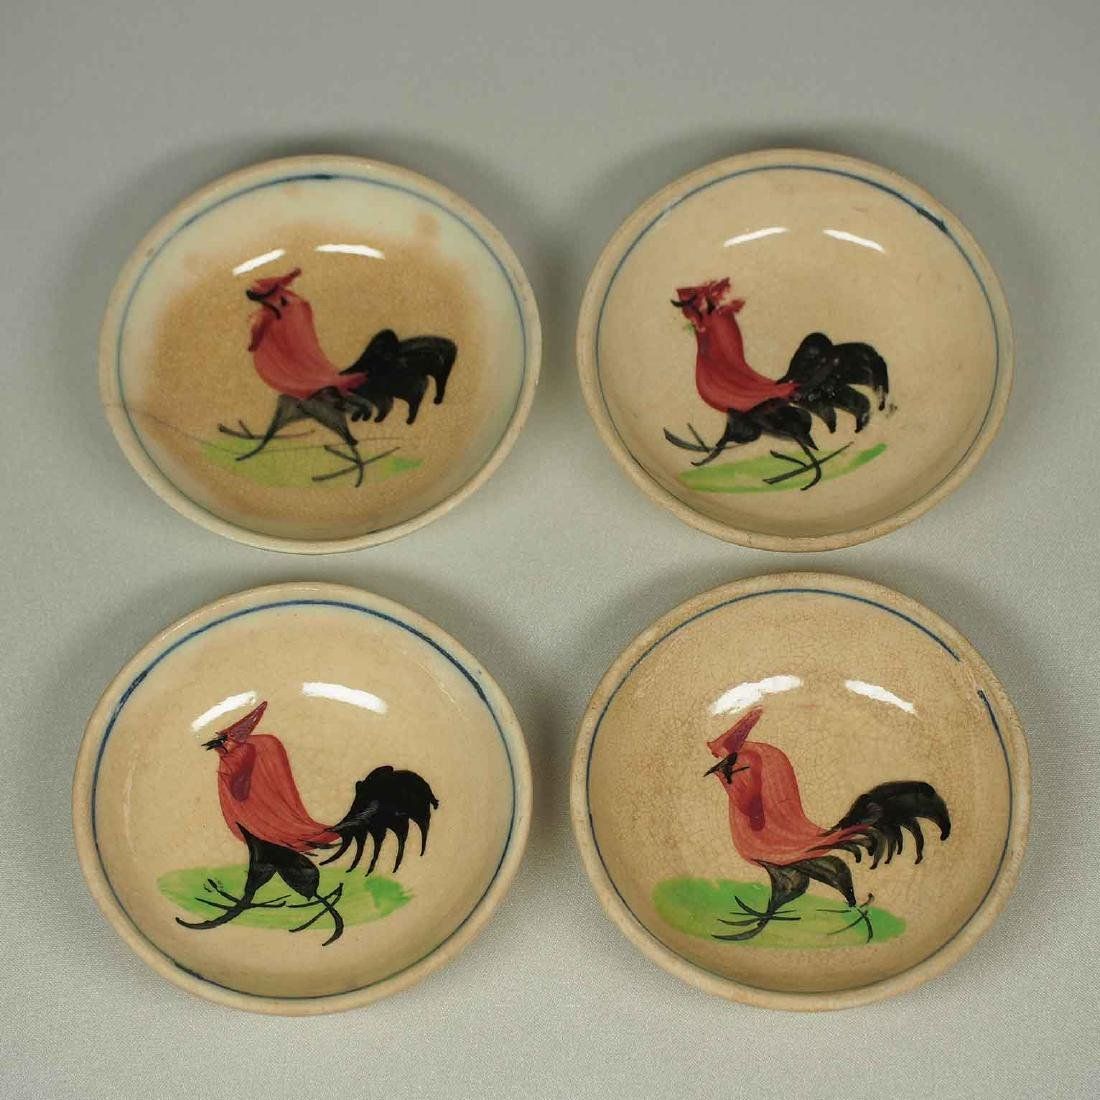 Set of 4 Sauce Dishes with Rooster Design, early 20th